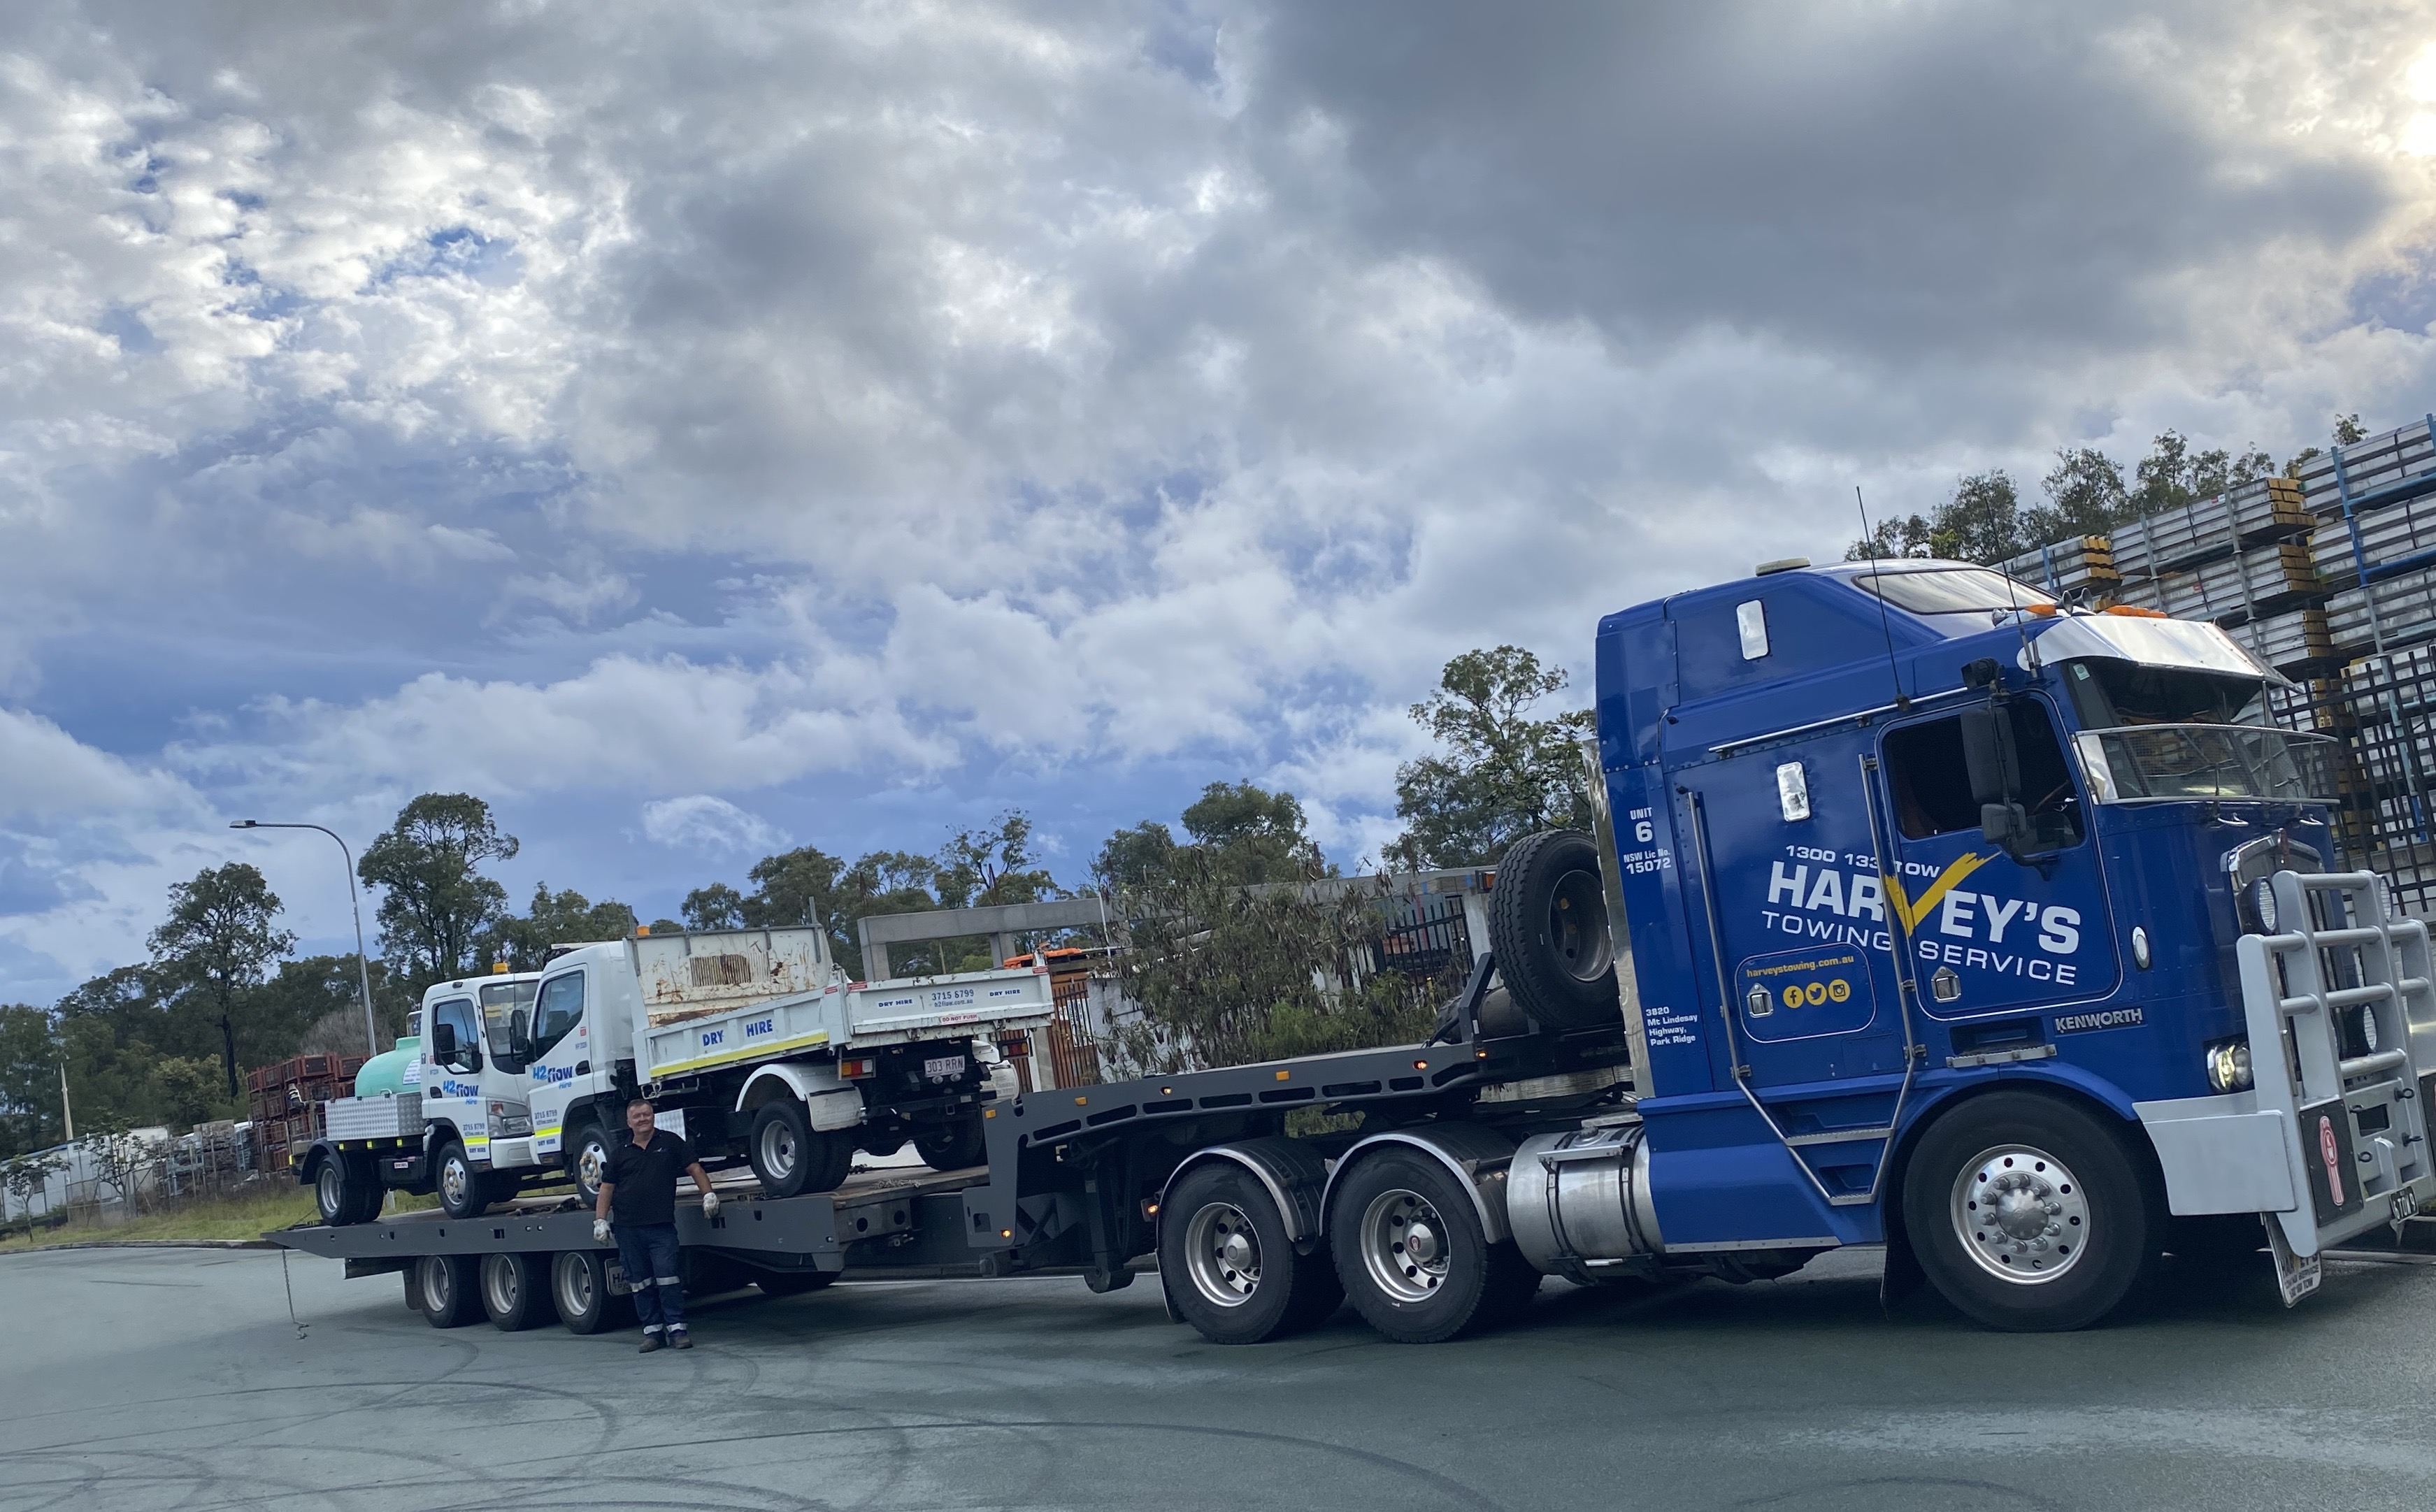 H2flow Hire Water Trucks loaded onto Harvey's Towing tow truck.